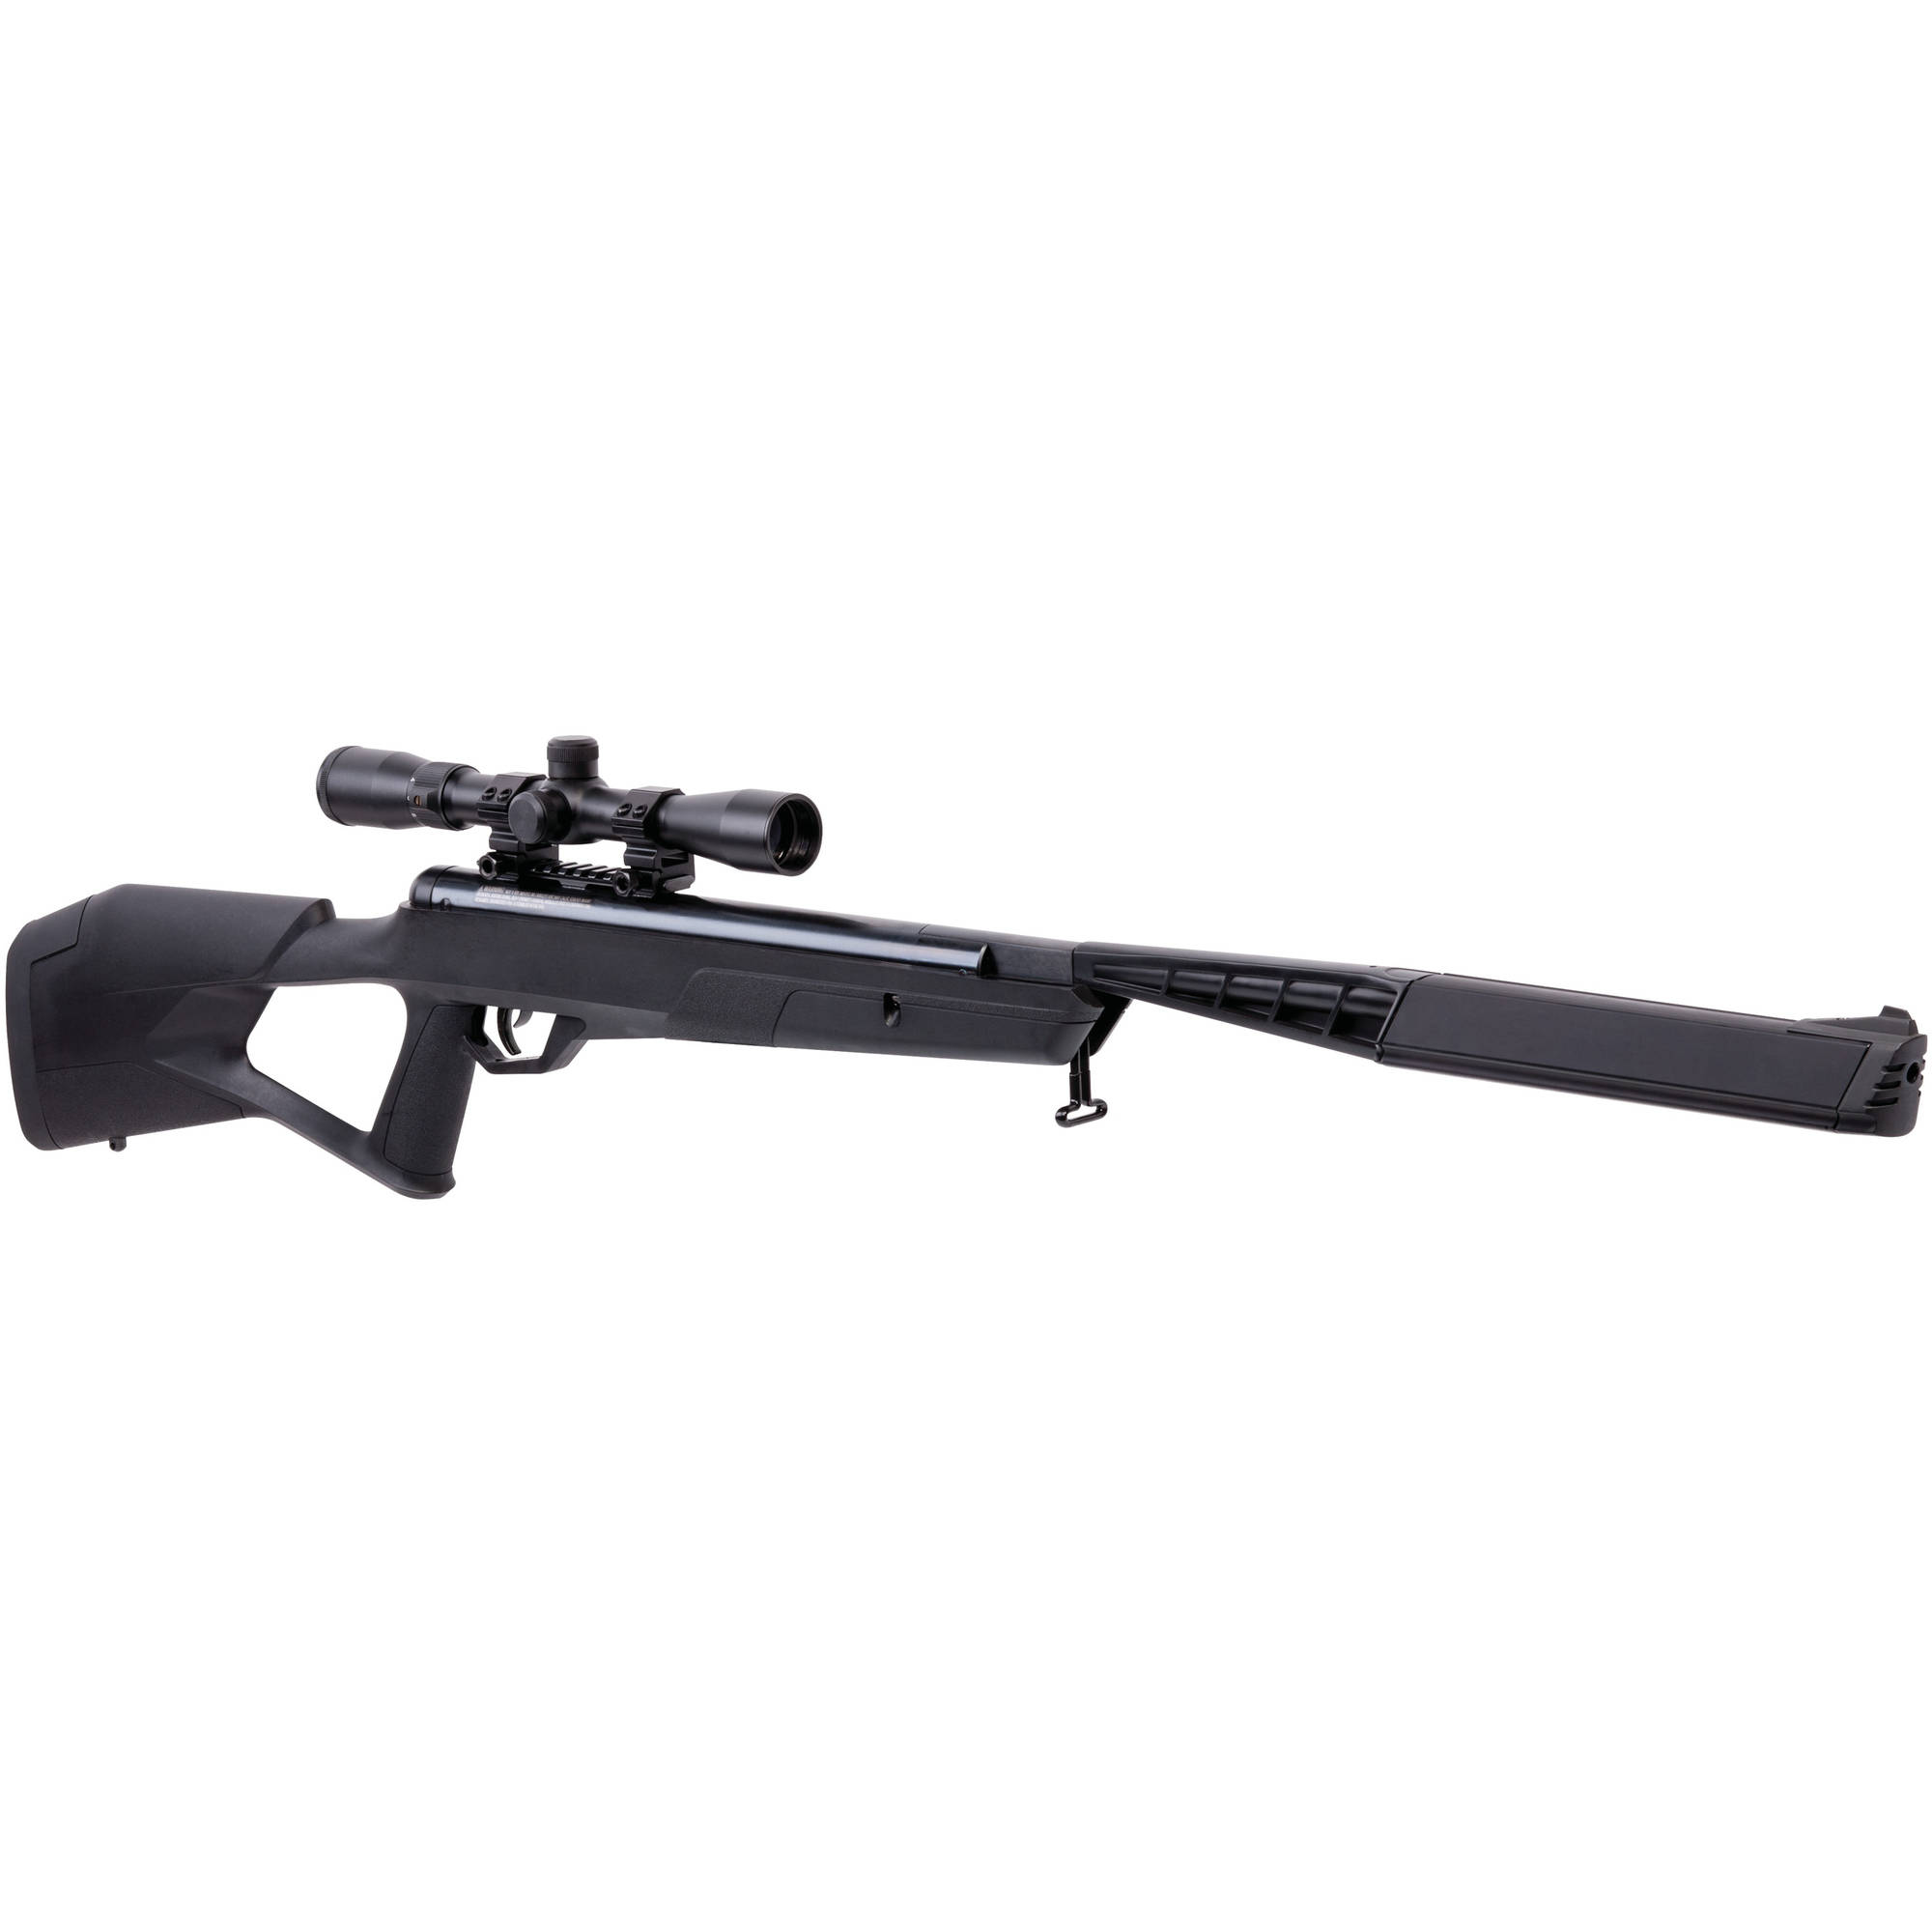 Benjamin Trail SBD Stealth All-Weather .177 Caliber NP2 Break Barrel Air Rifle with Scope, 1400fps by Crosman